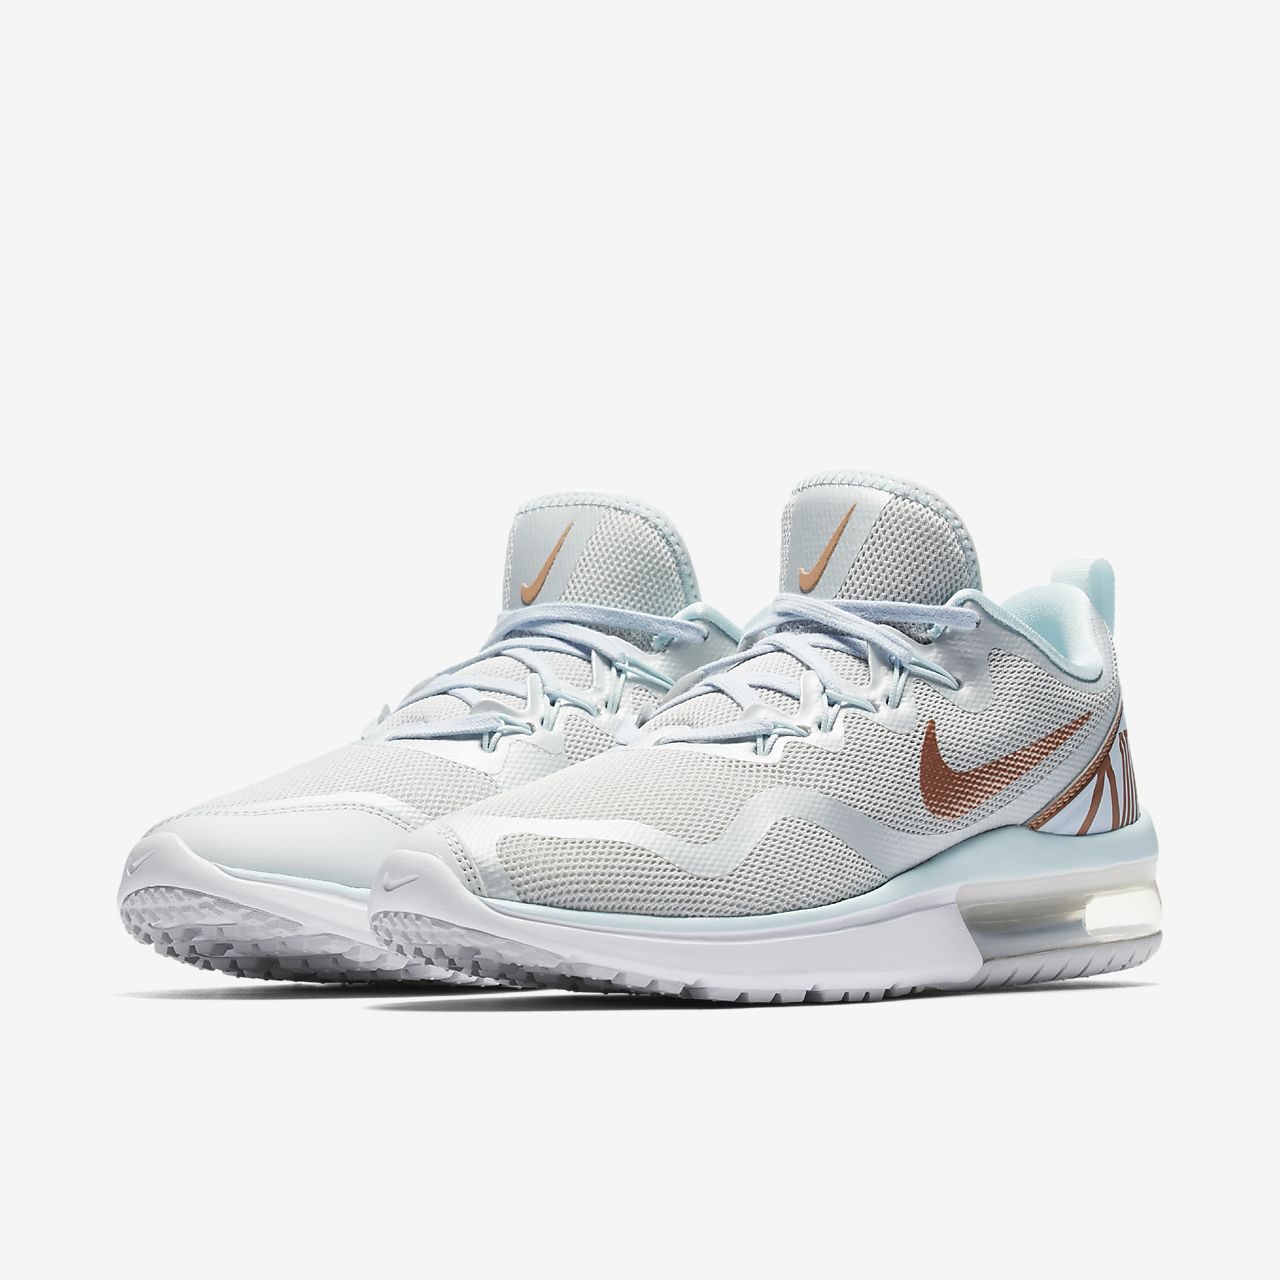 Nike Air Max Fury Running Nike 2018 Air Max Fury Corriendo 2018 Nike Nike f4cad6